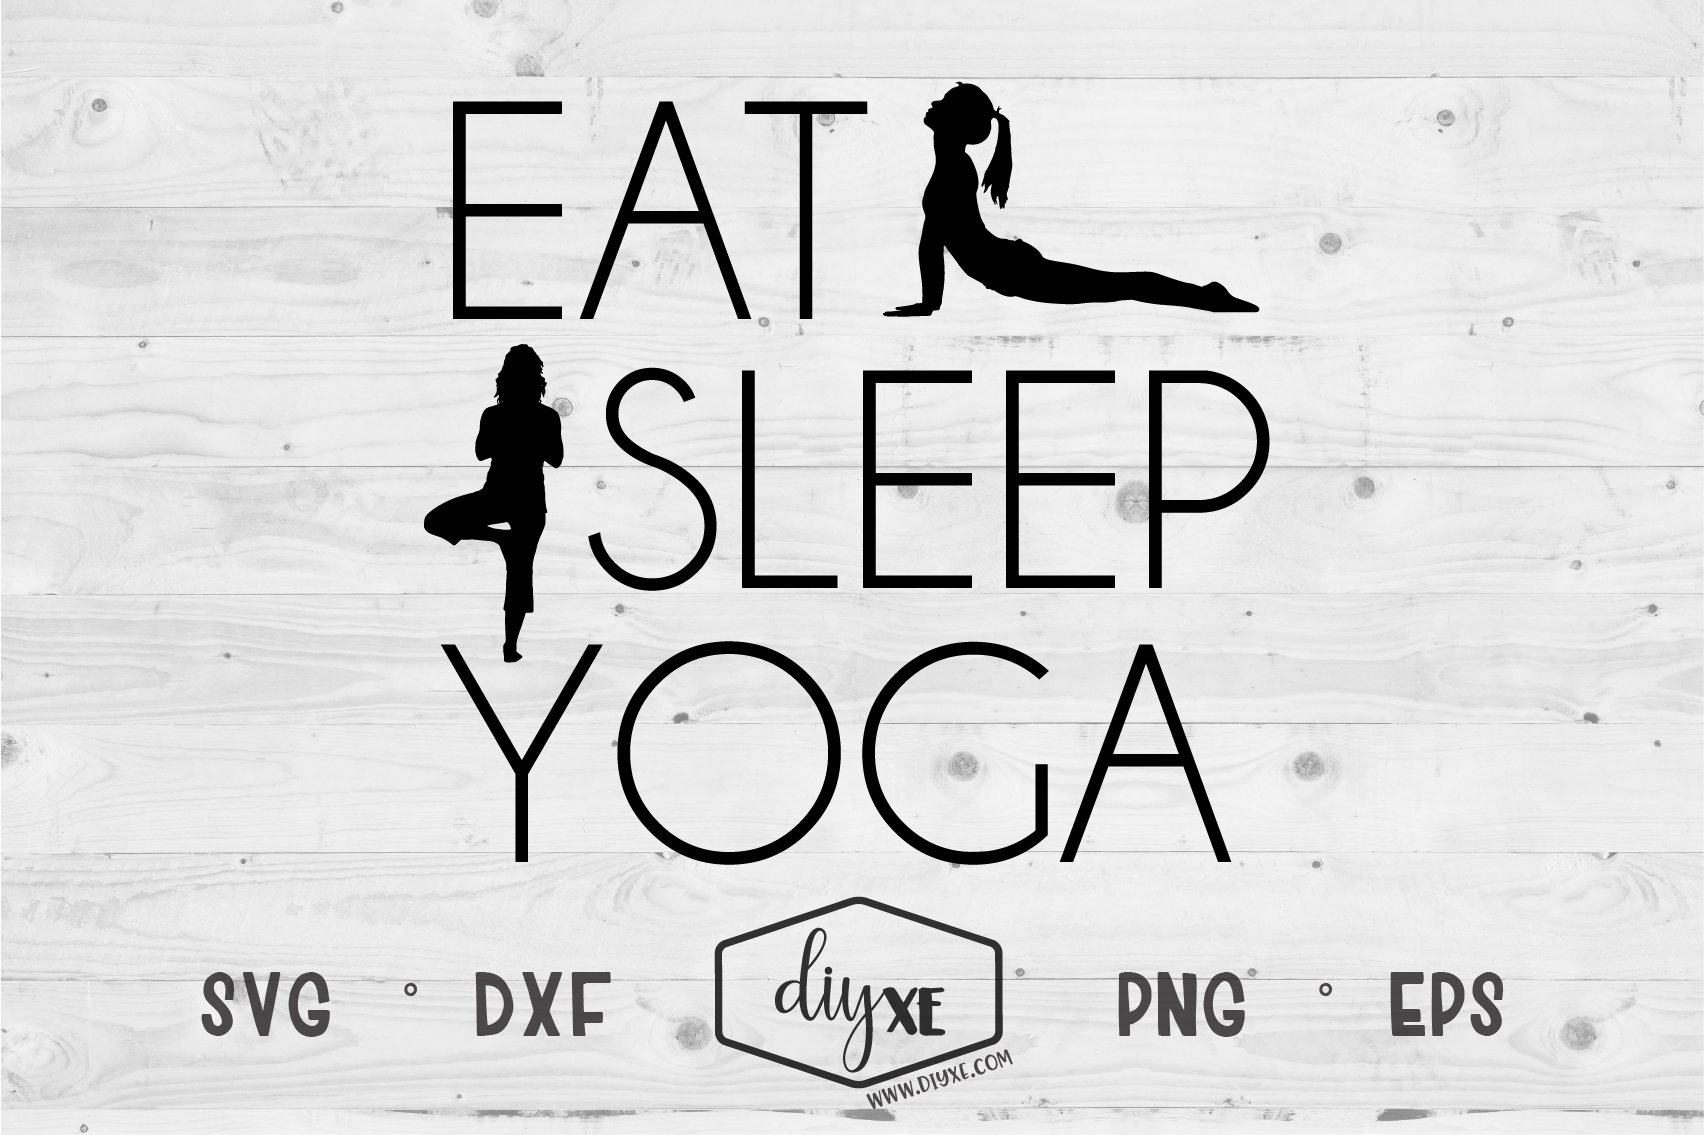 Eat Sleep Yoga - A Yoga SVG Cut File example image 2